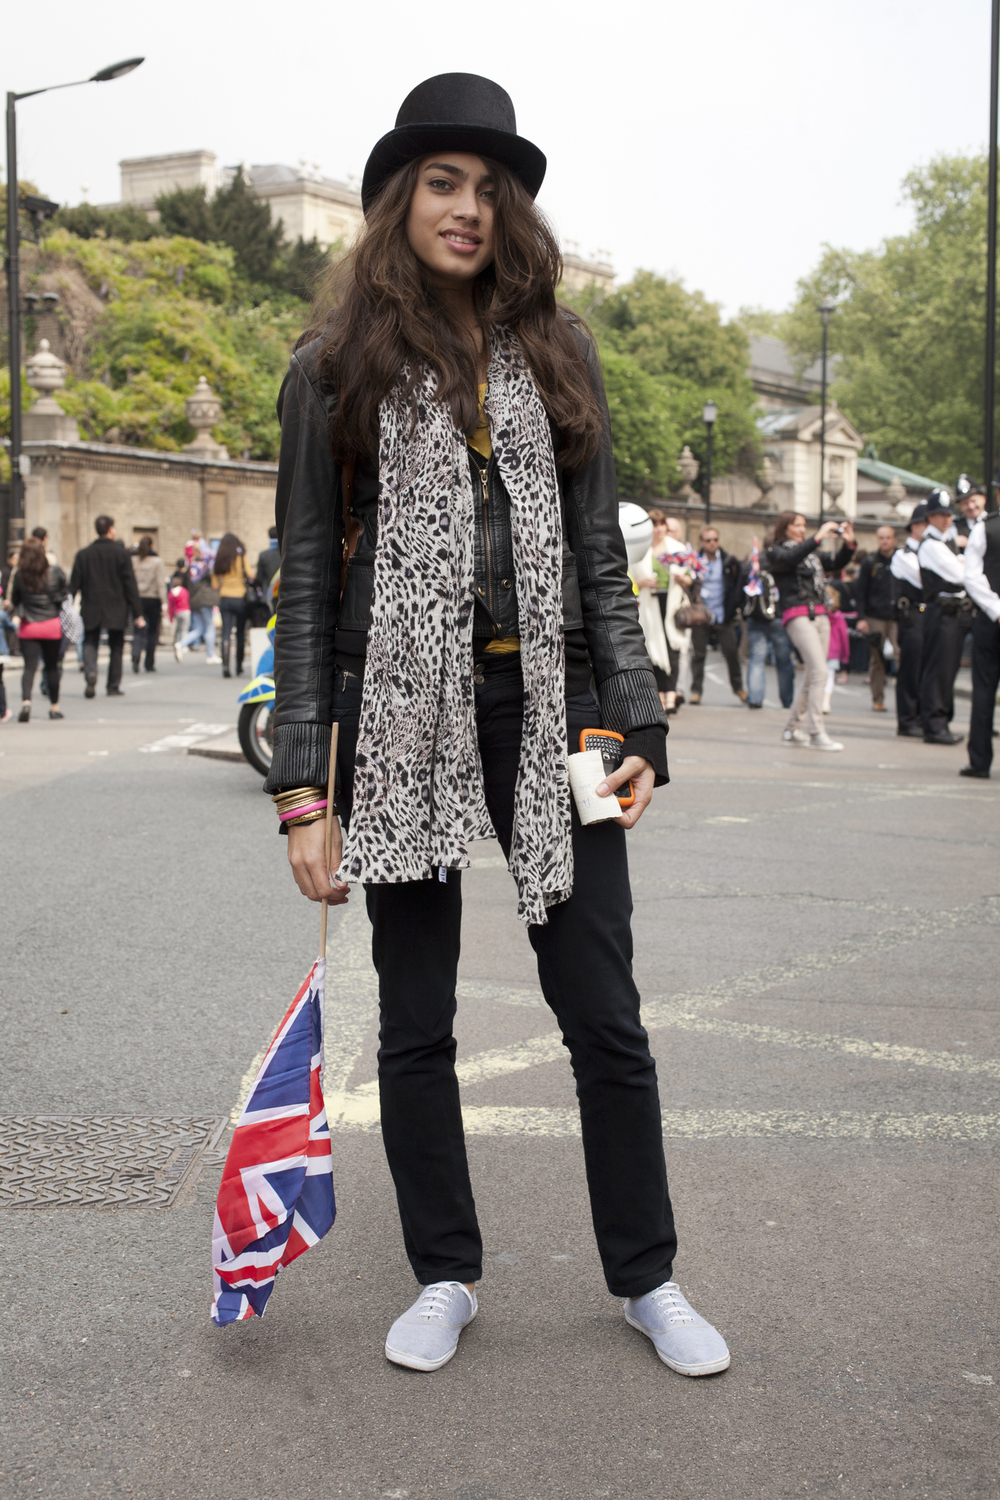 Royal Wedding Street Fashion - AOL